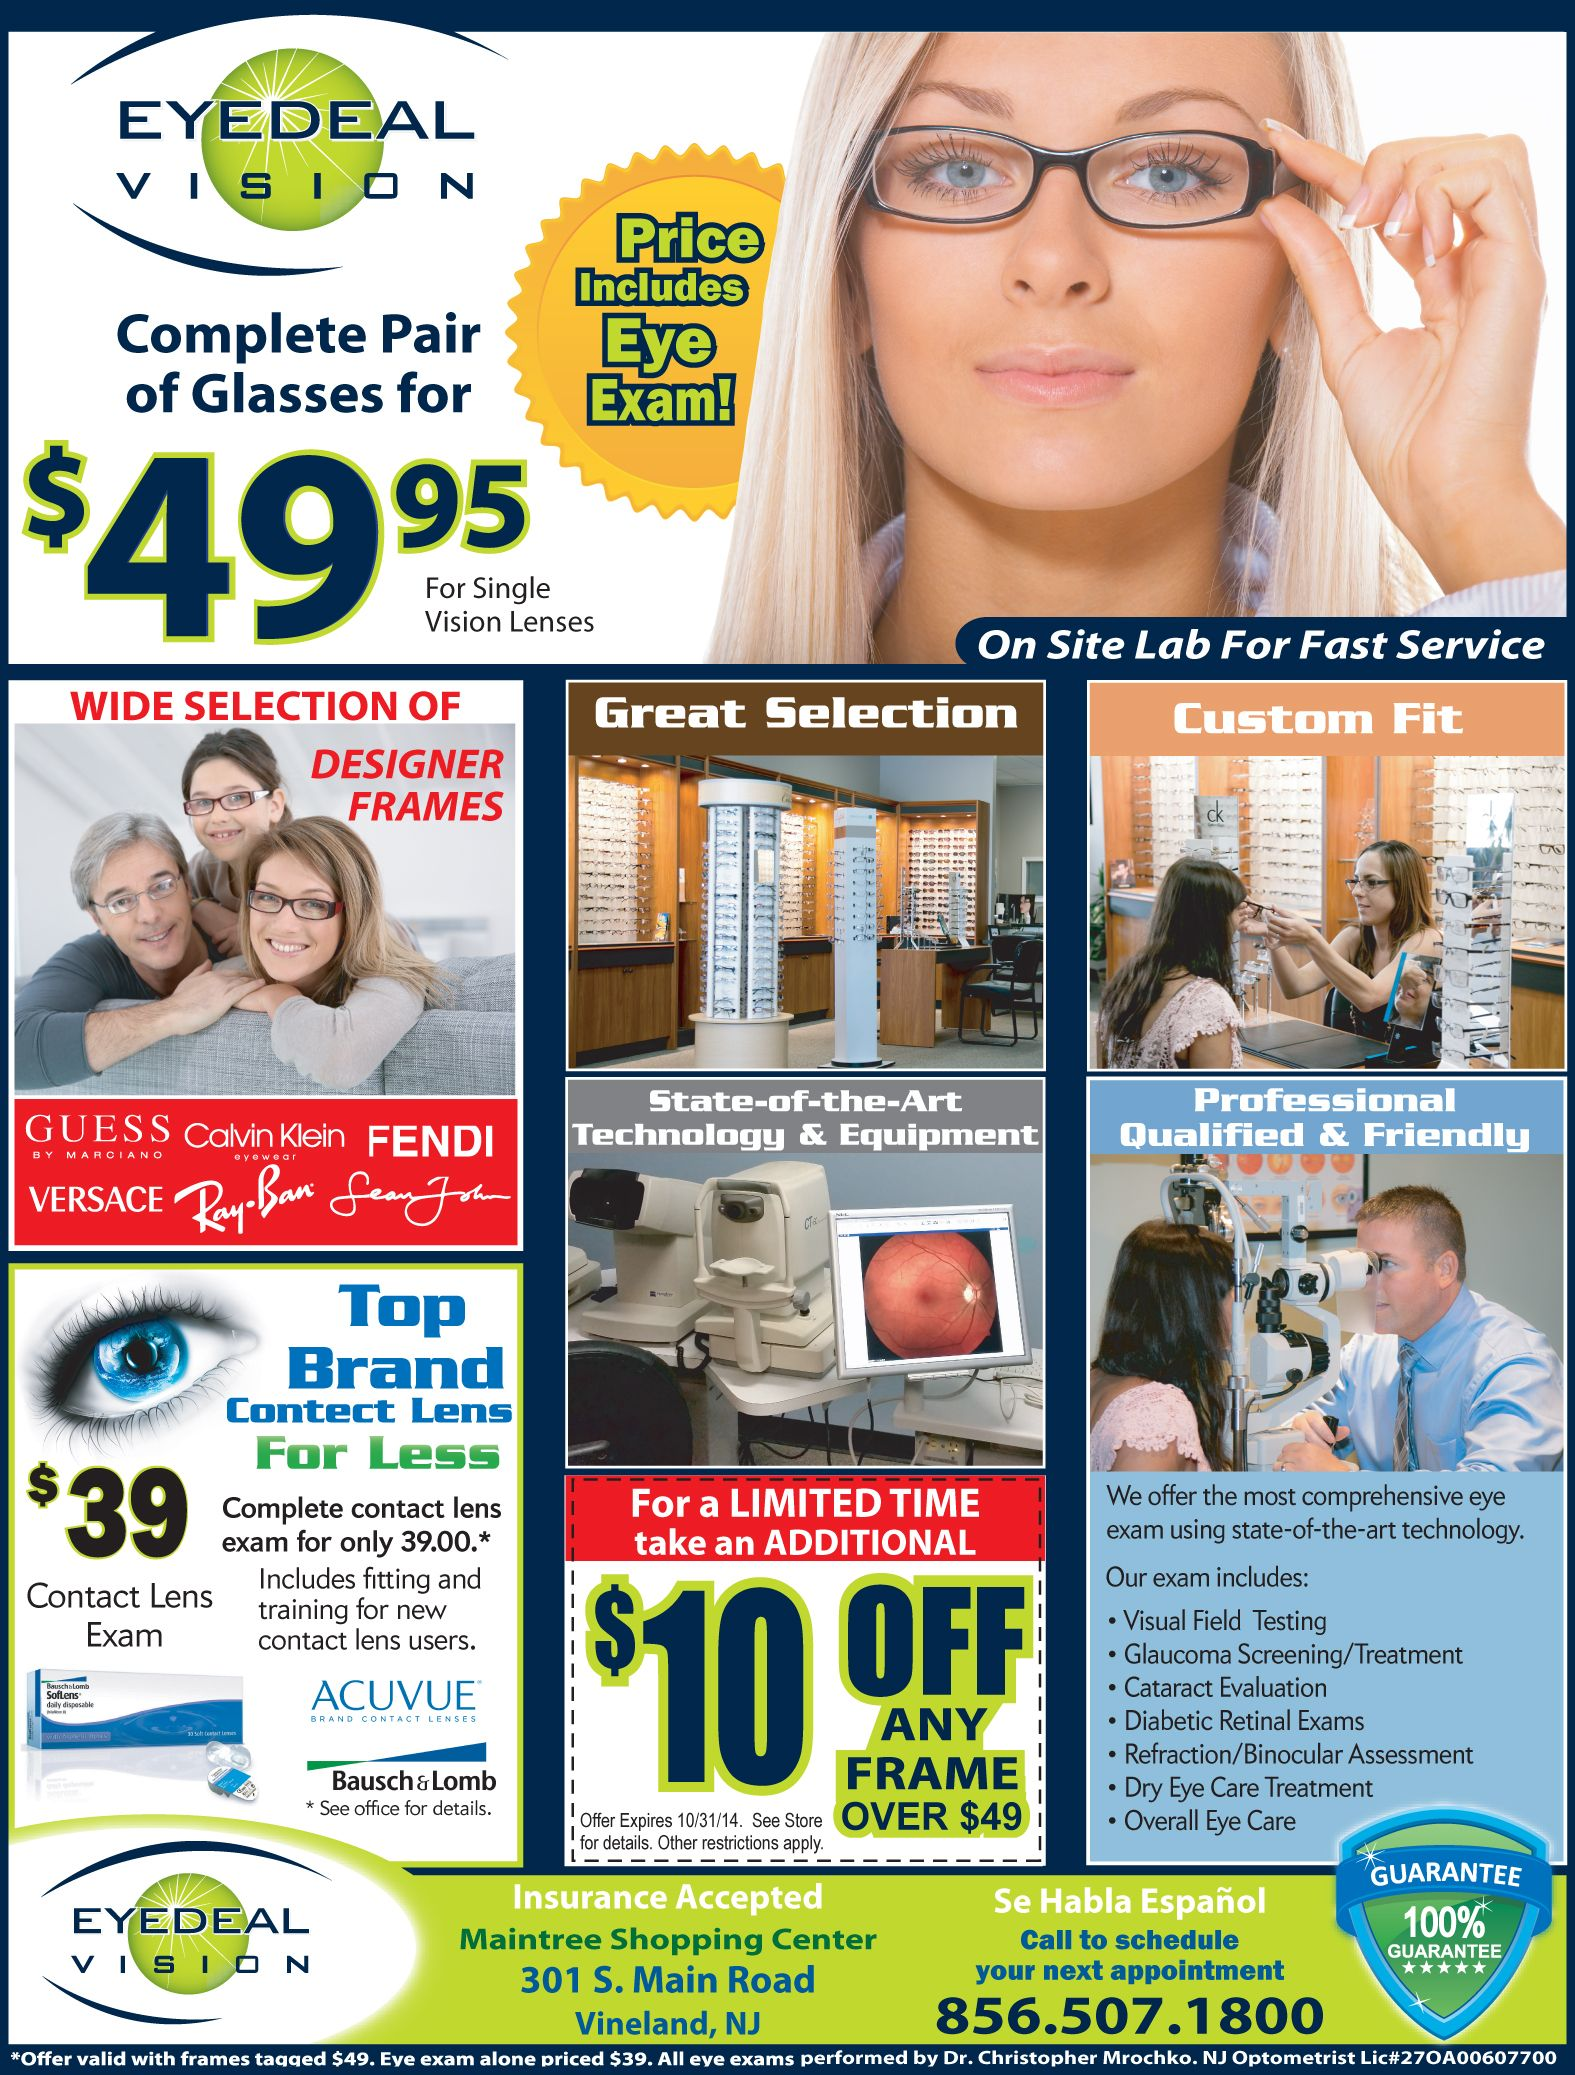 e5e395535c9 Eyedeal Vision offers the most comprehensive eye exam and more! Click here  to see their